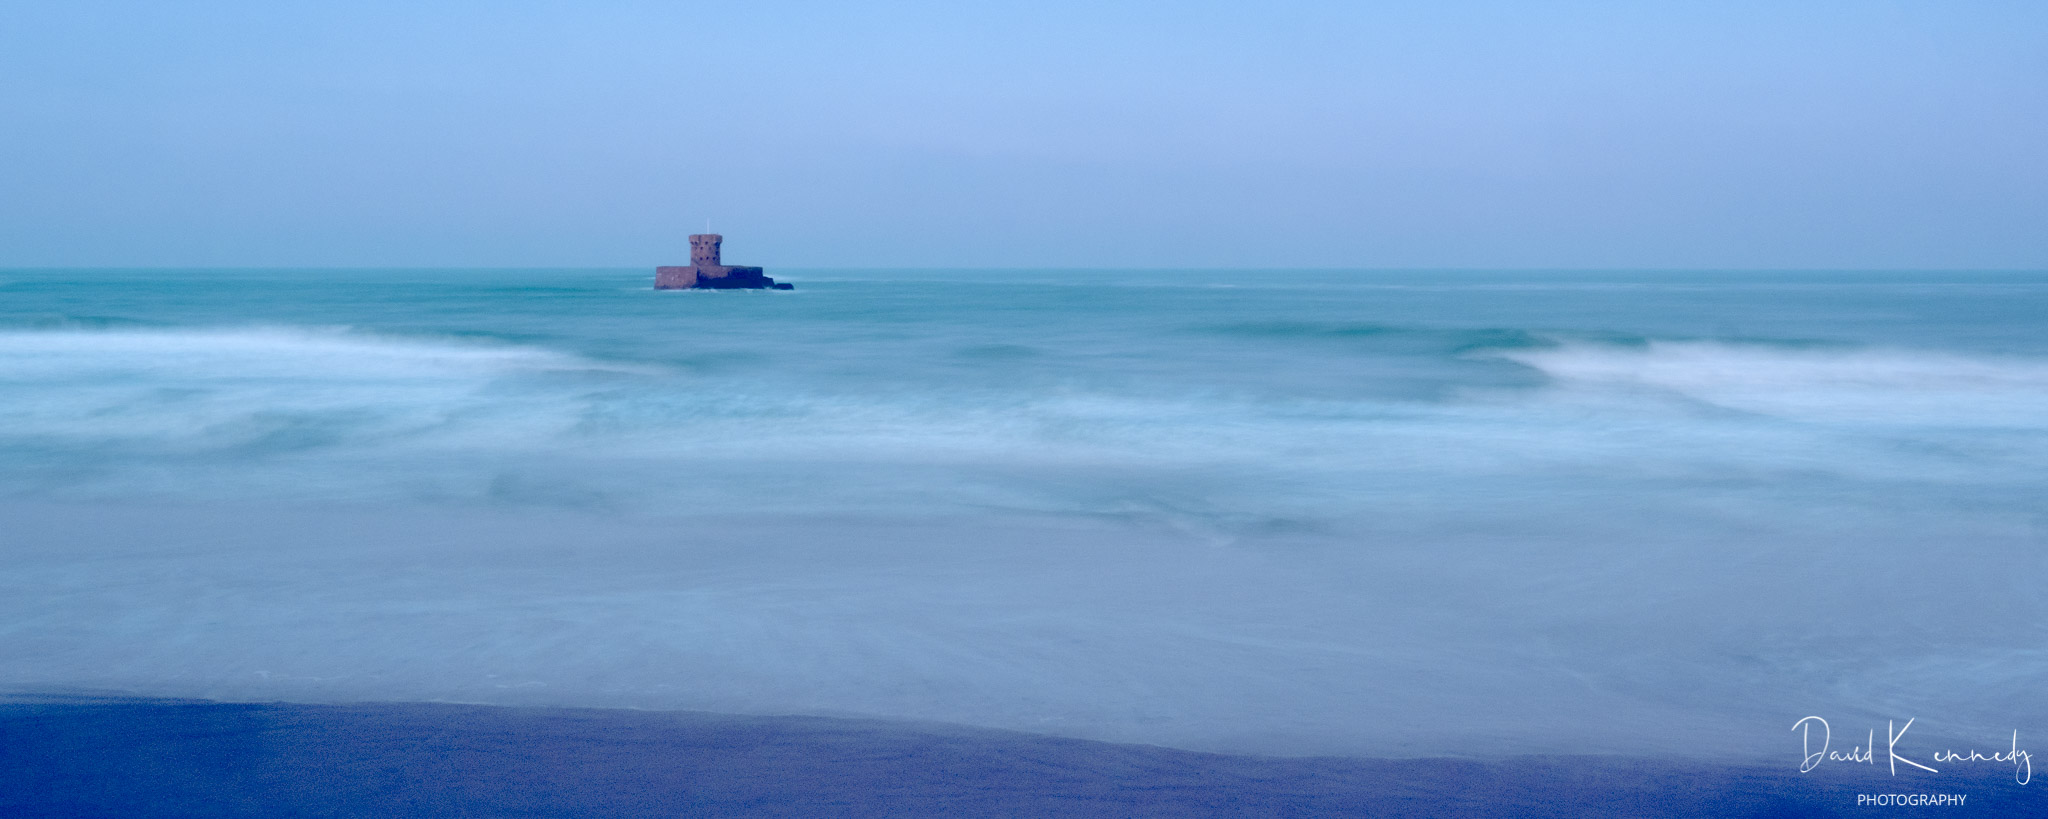 La Rocco Tower built in Napoleonic Times, at high tide in St Ouen's Bay Jersey Channel Islands